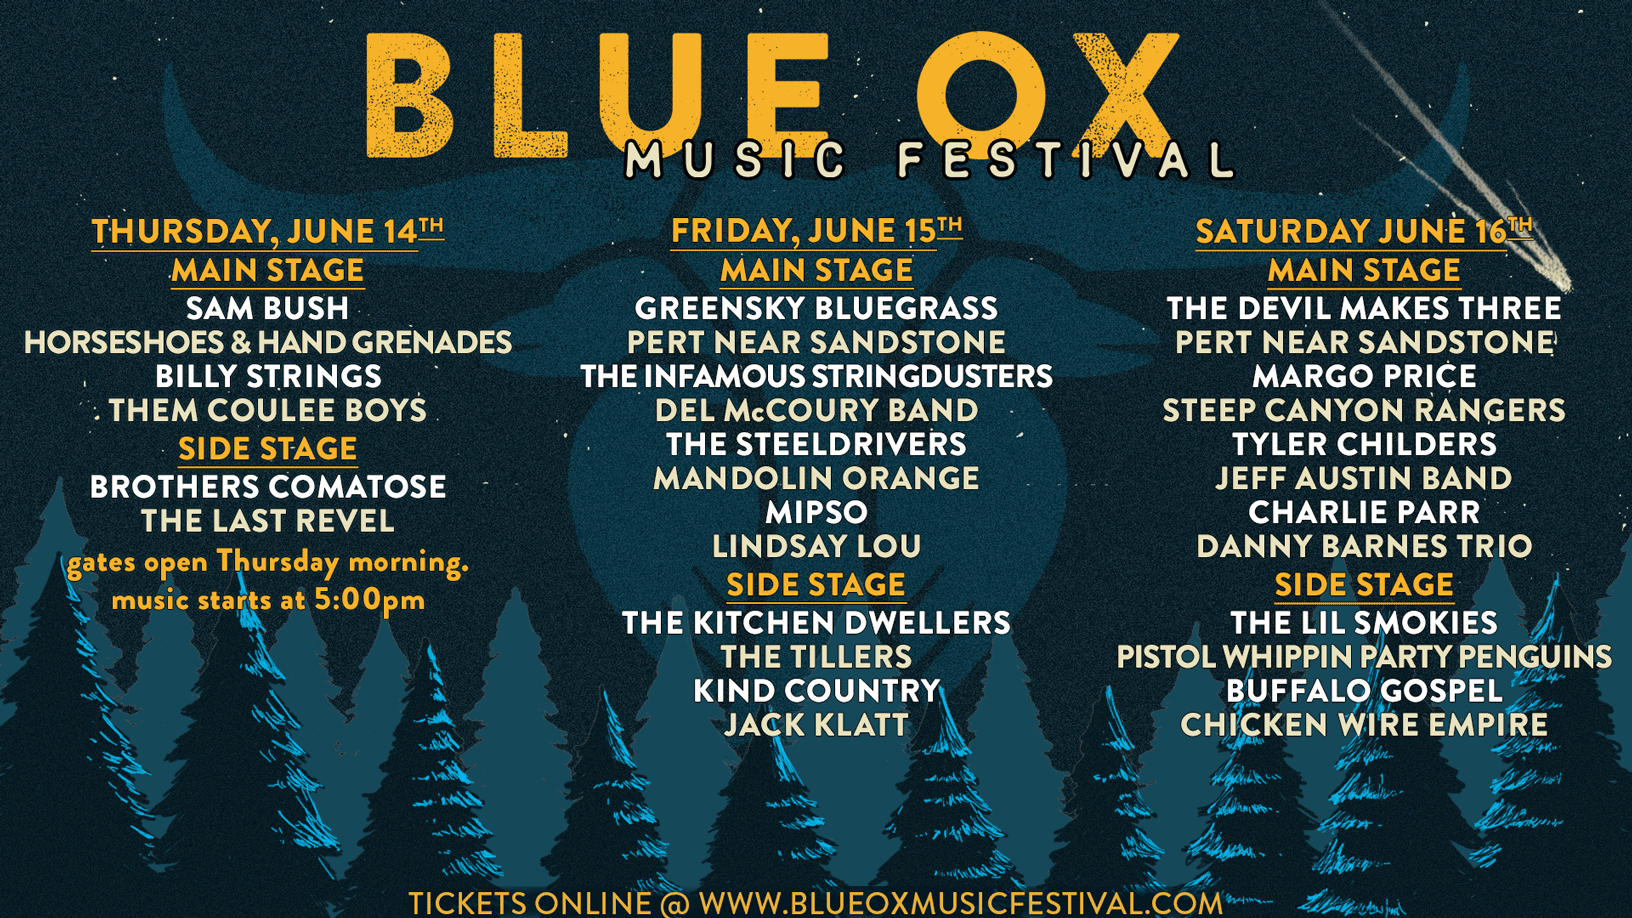 2018 blue ox music festival daily schedule june 14 16 eau claire wi